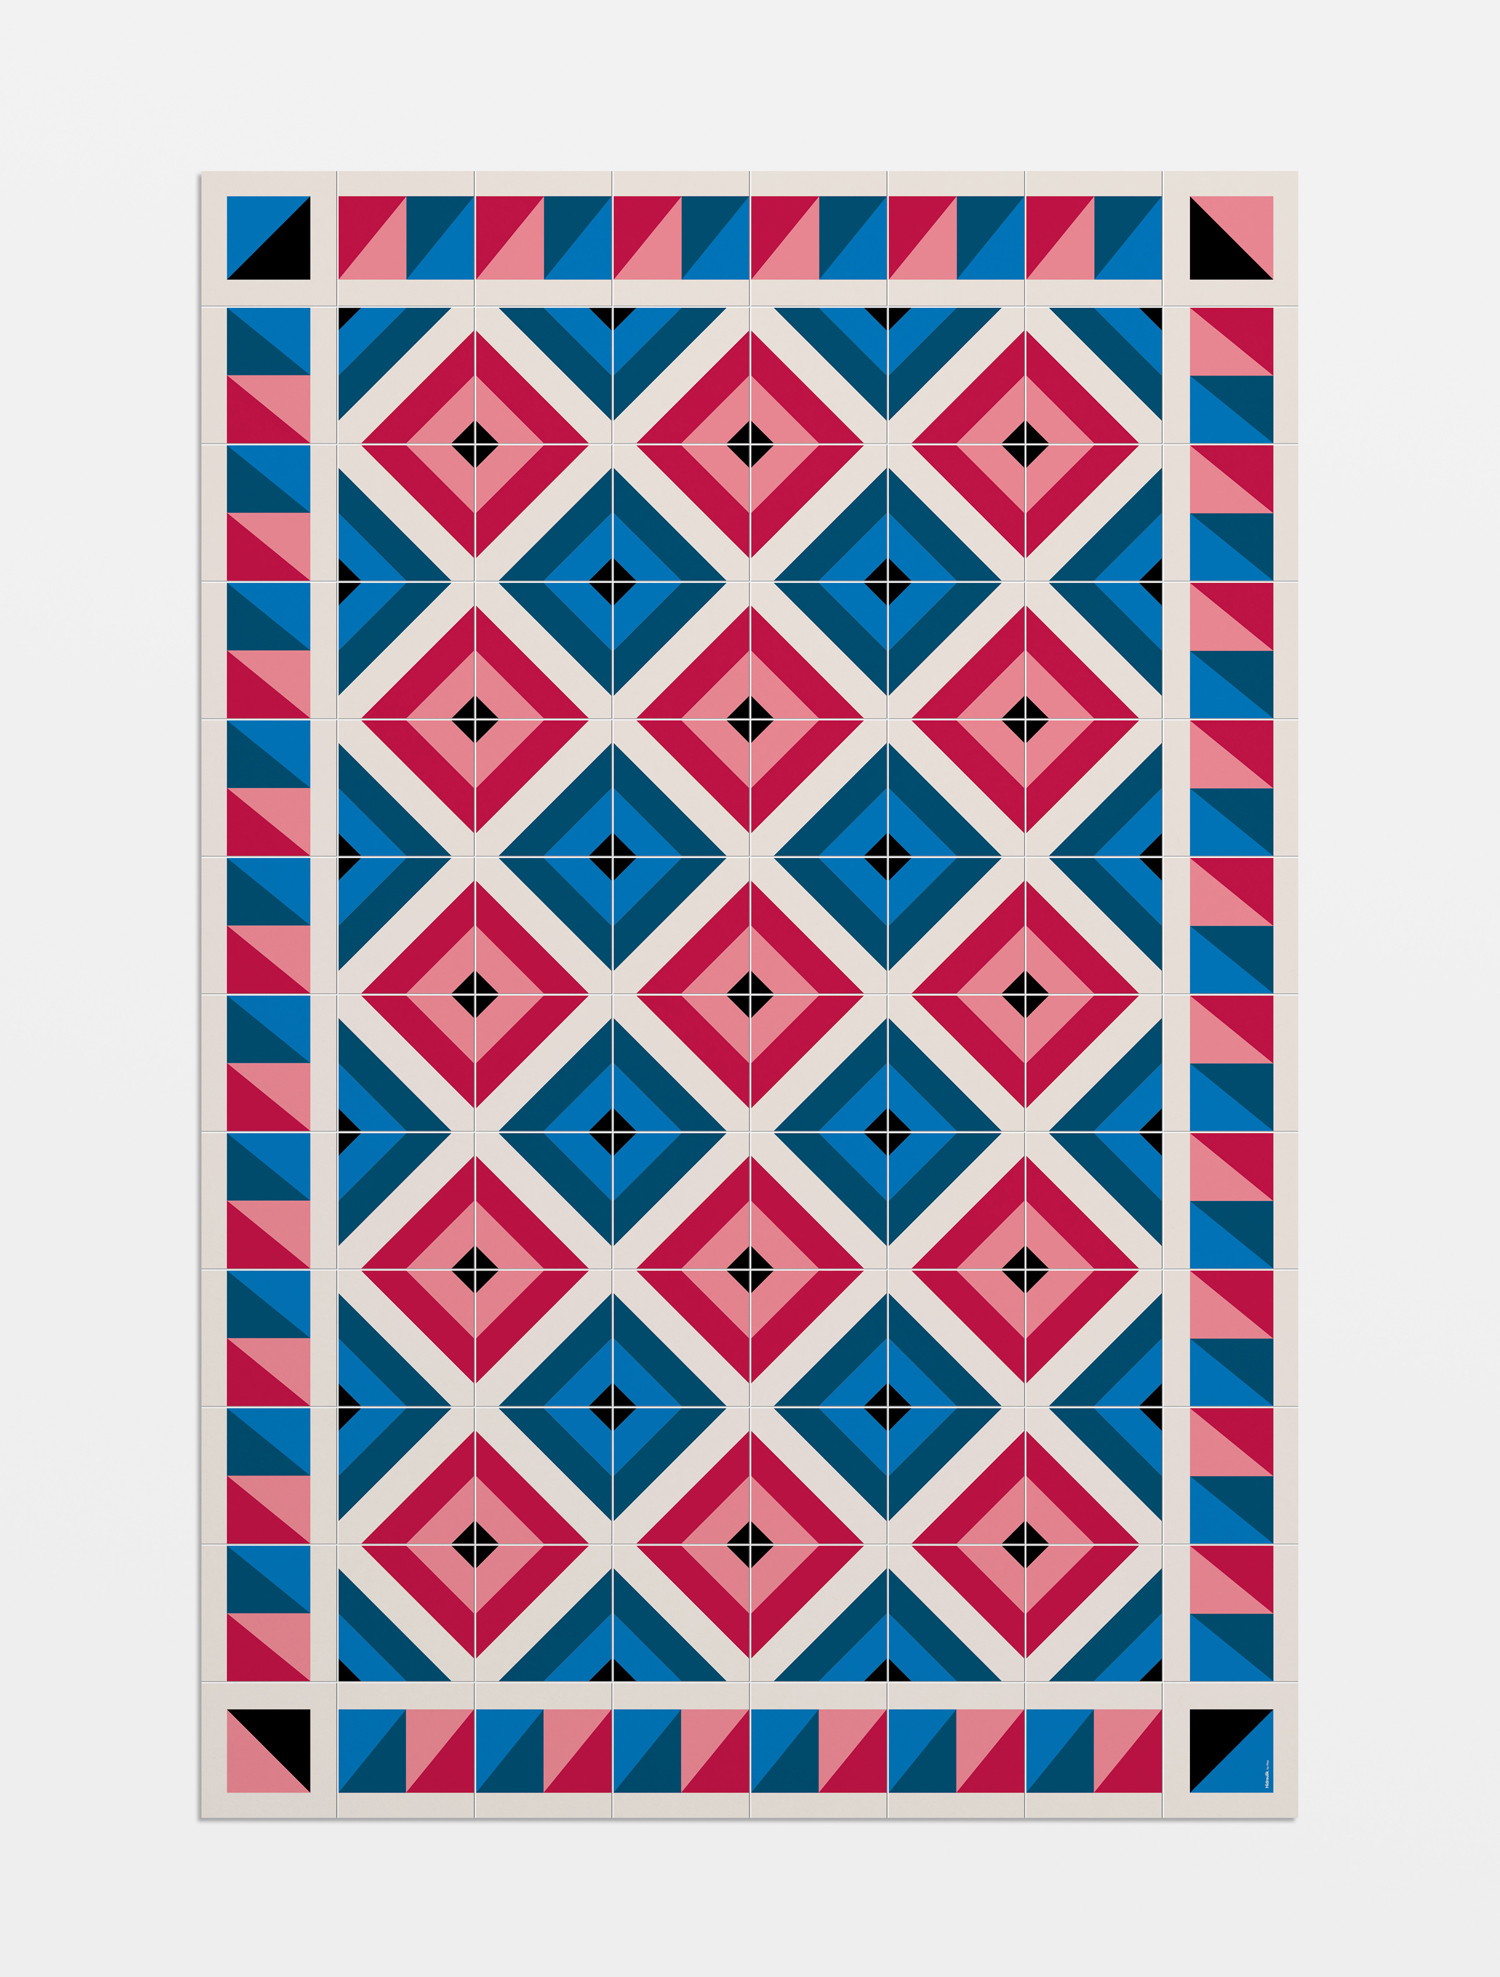 Prints by Hey for Hidraulik, a range of 100% PVC floor and table mats inspired by 20th century modernism